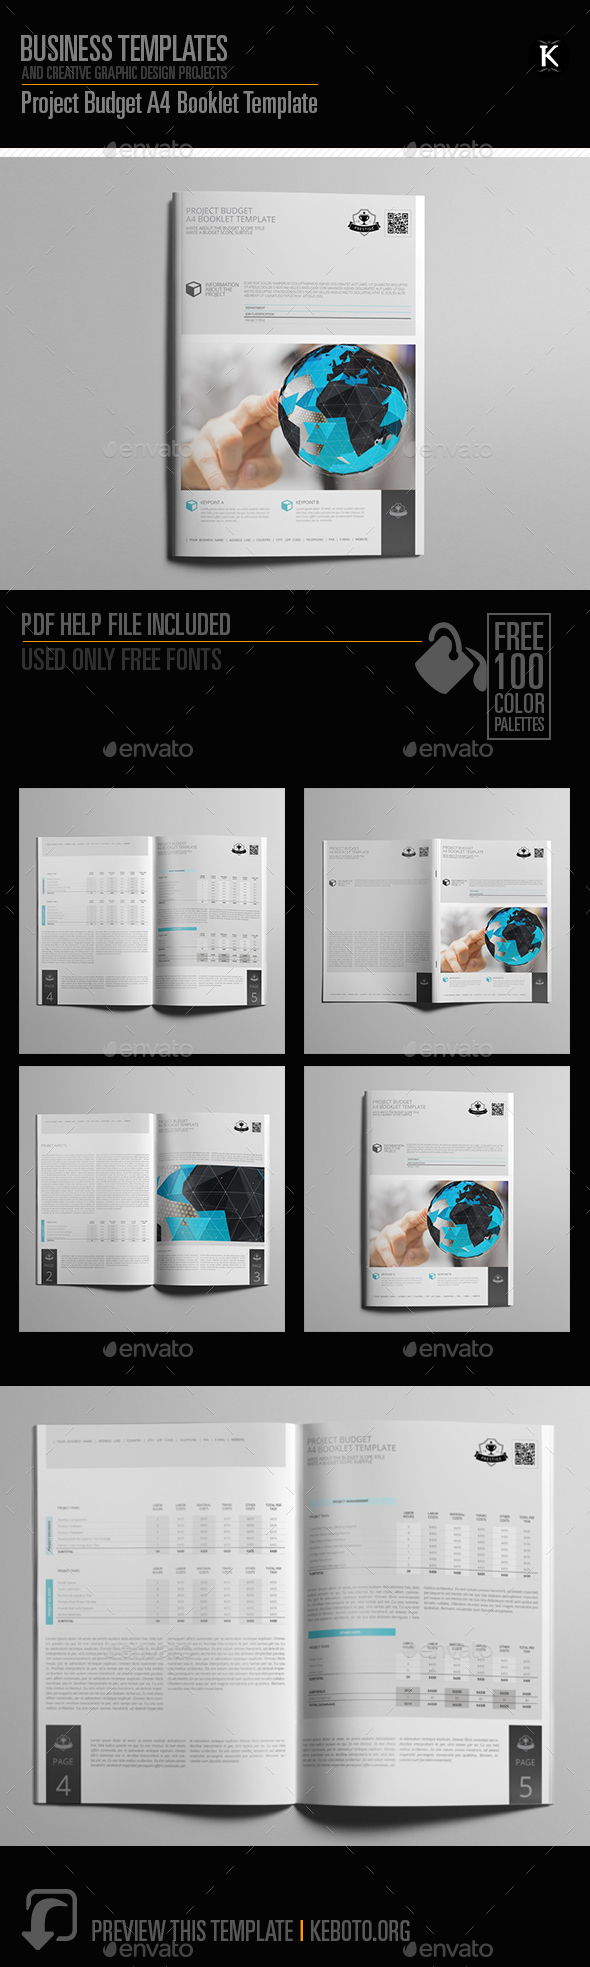 Project Budget A4 Booklet Template   Miscellaneous Print Templates  Booklet Template